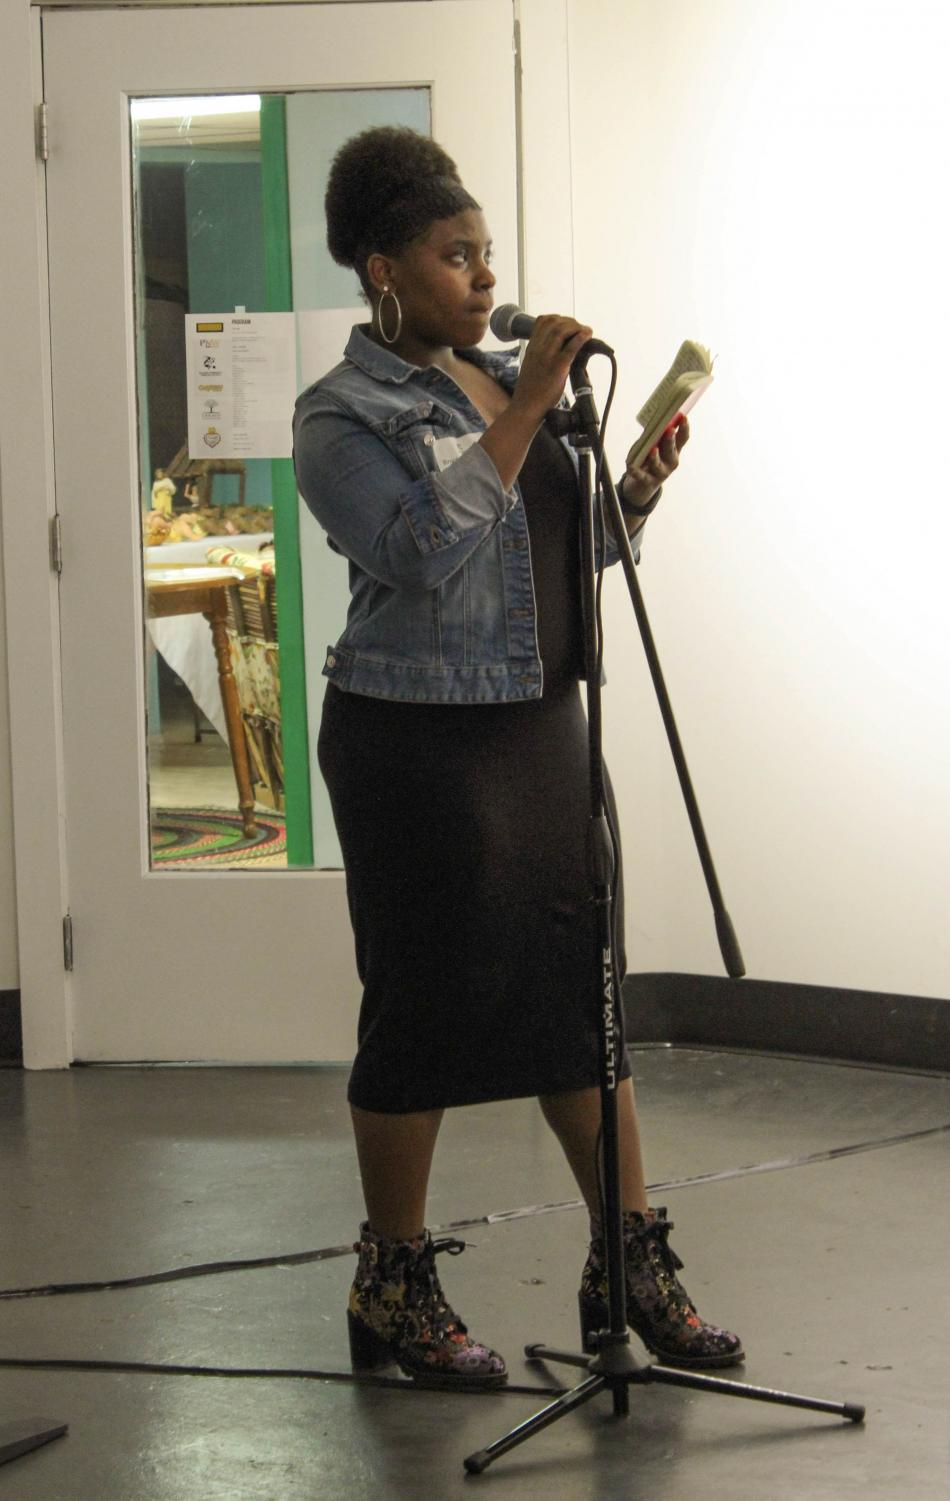 Brookelyn Burks, junior at Merrillville High School, won third place for her performance at the Feb. 15 event.